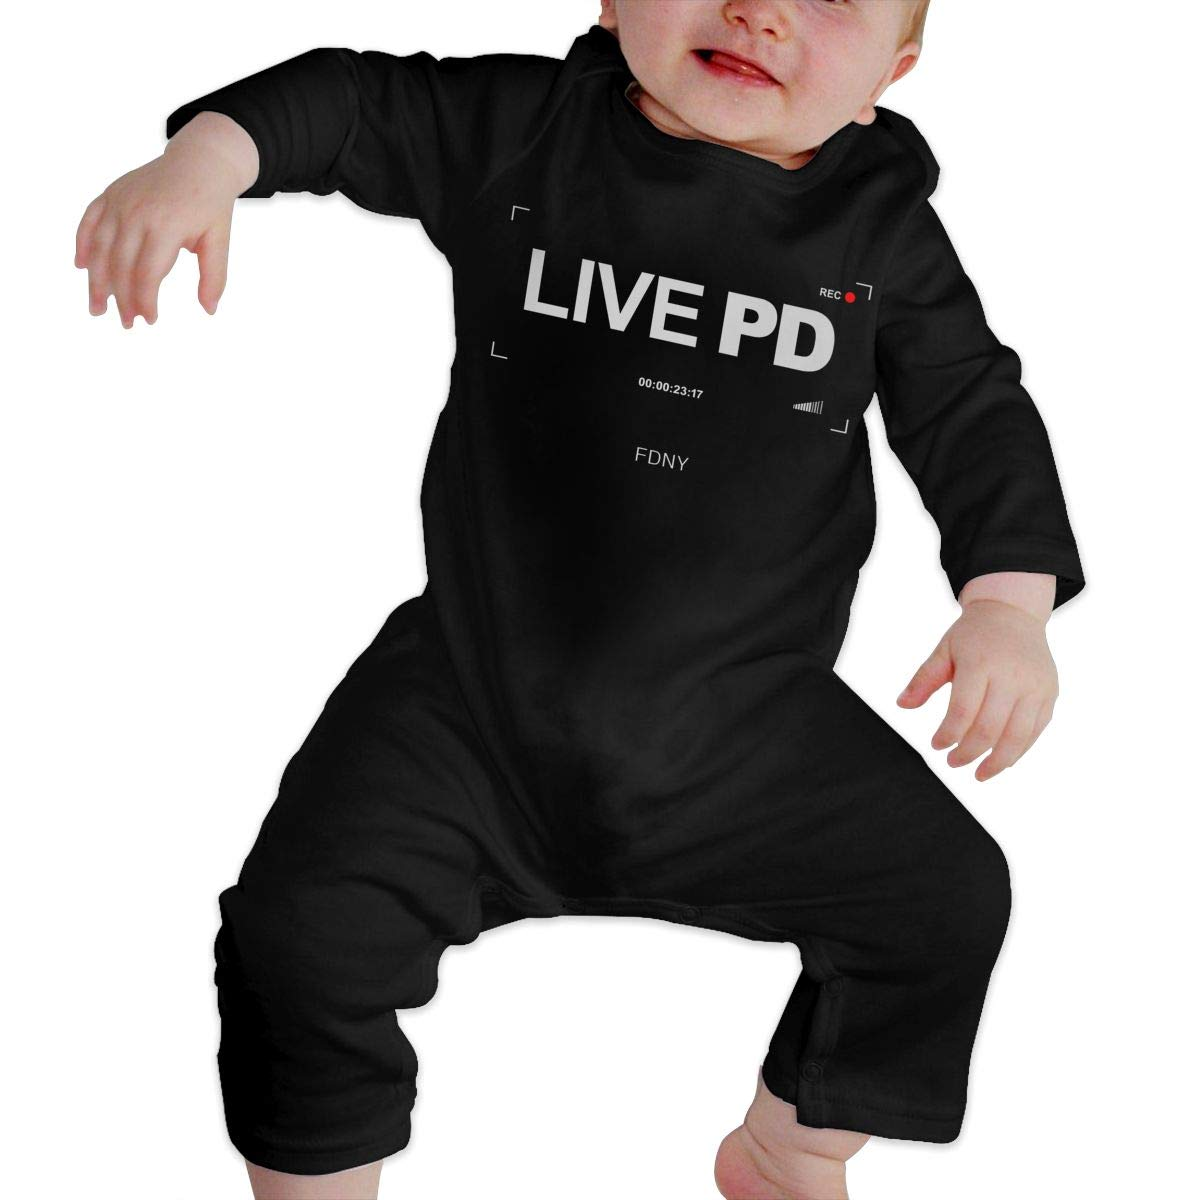 Fasenix Live PD Newborn Baby Boy Girl Romper Jumpsuit Long Sleeve Bodysuit Overalls Outfits Clothes